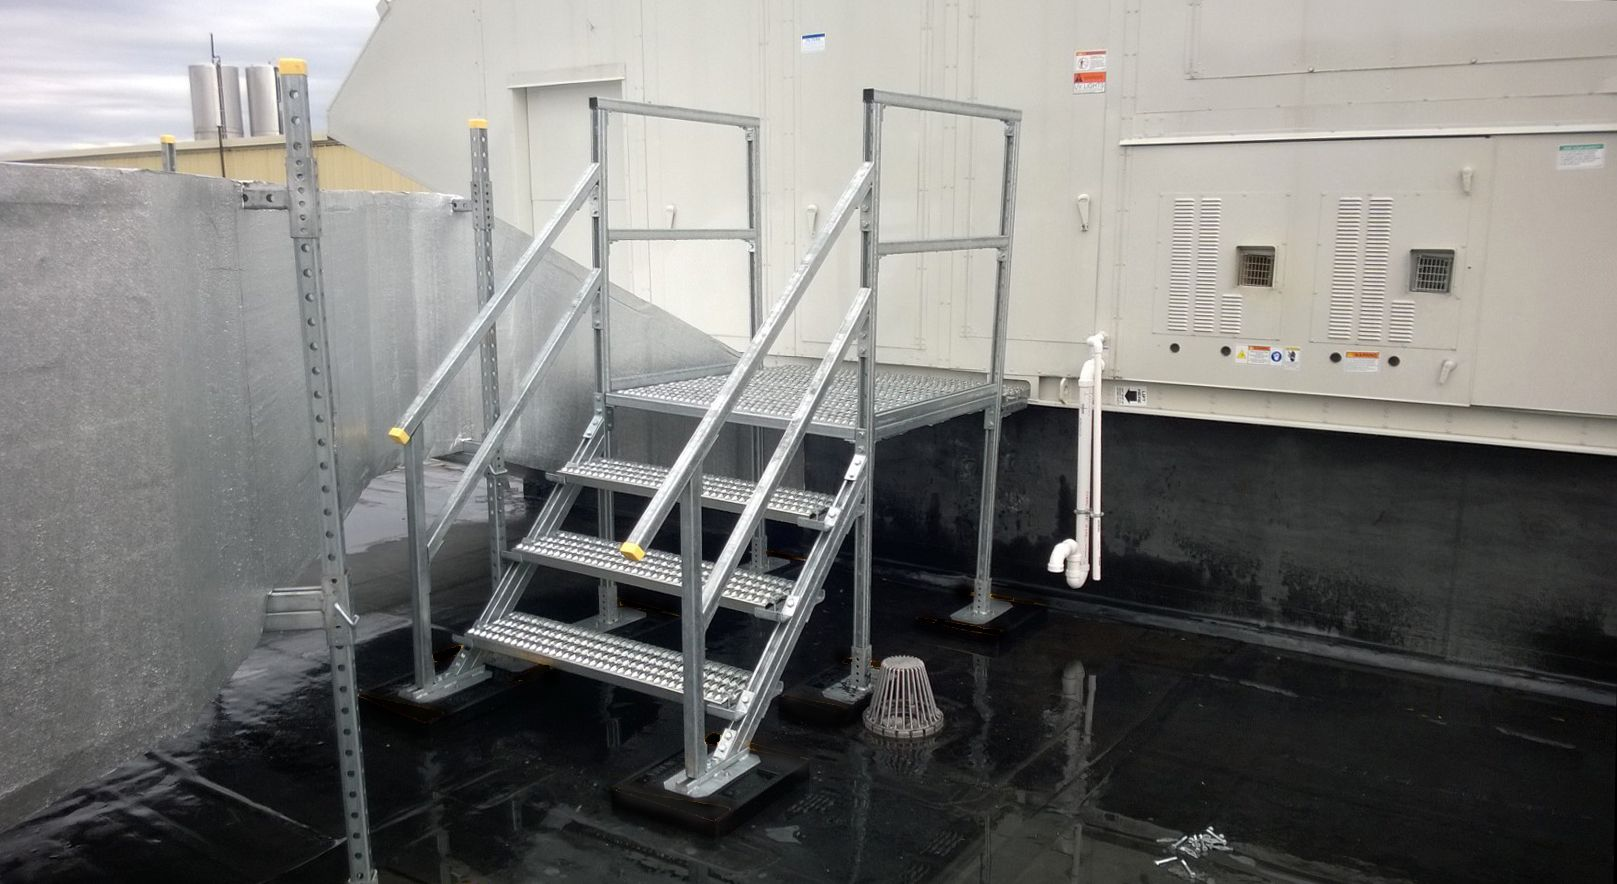 Access Platforms Give Workers Direct Access To Equipment Panels Doorways Other Access Points For Rooftop Hvac Condenser Units Other Rooftop Hvac Platform